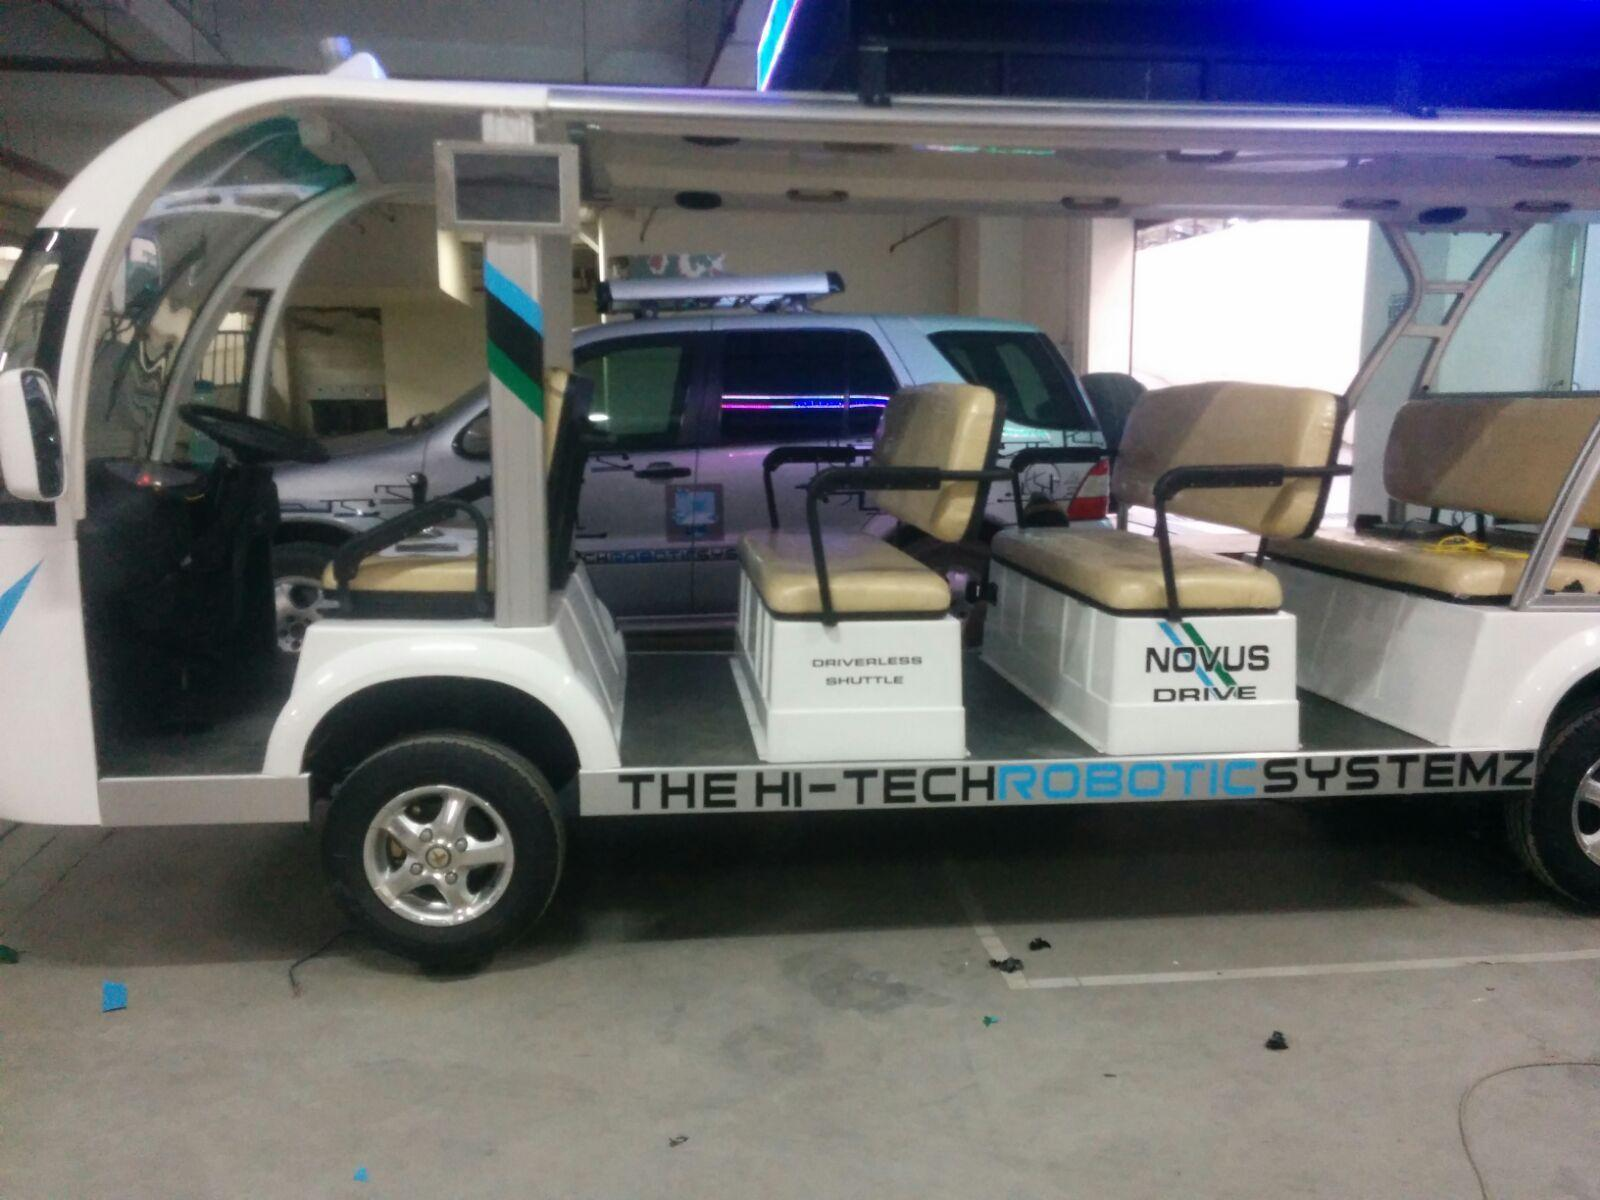 Hi-Tech0 Robotic Driverless Shuttle